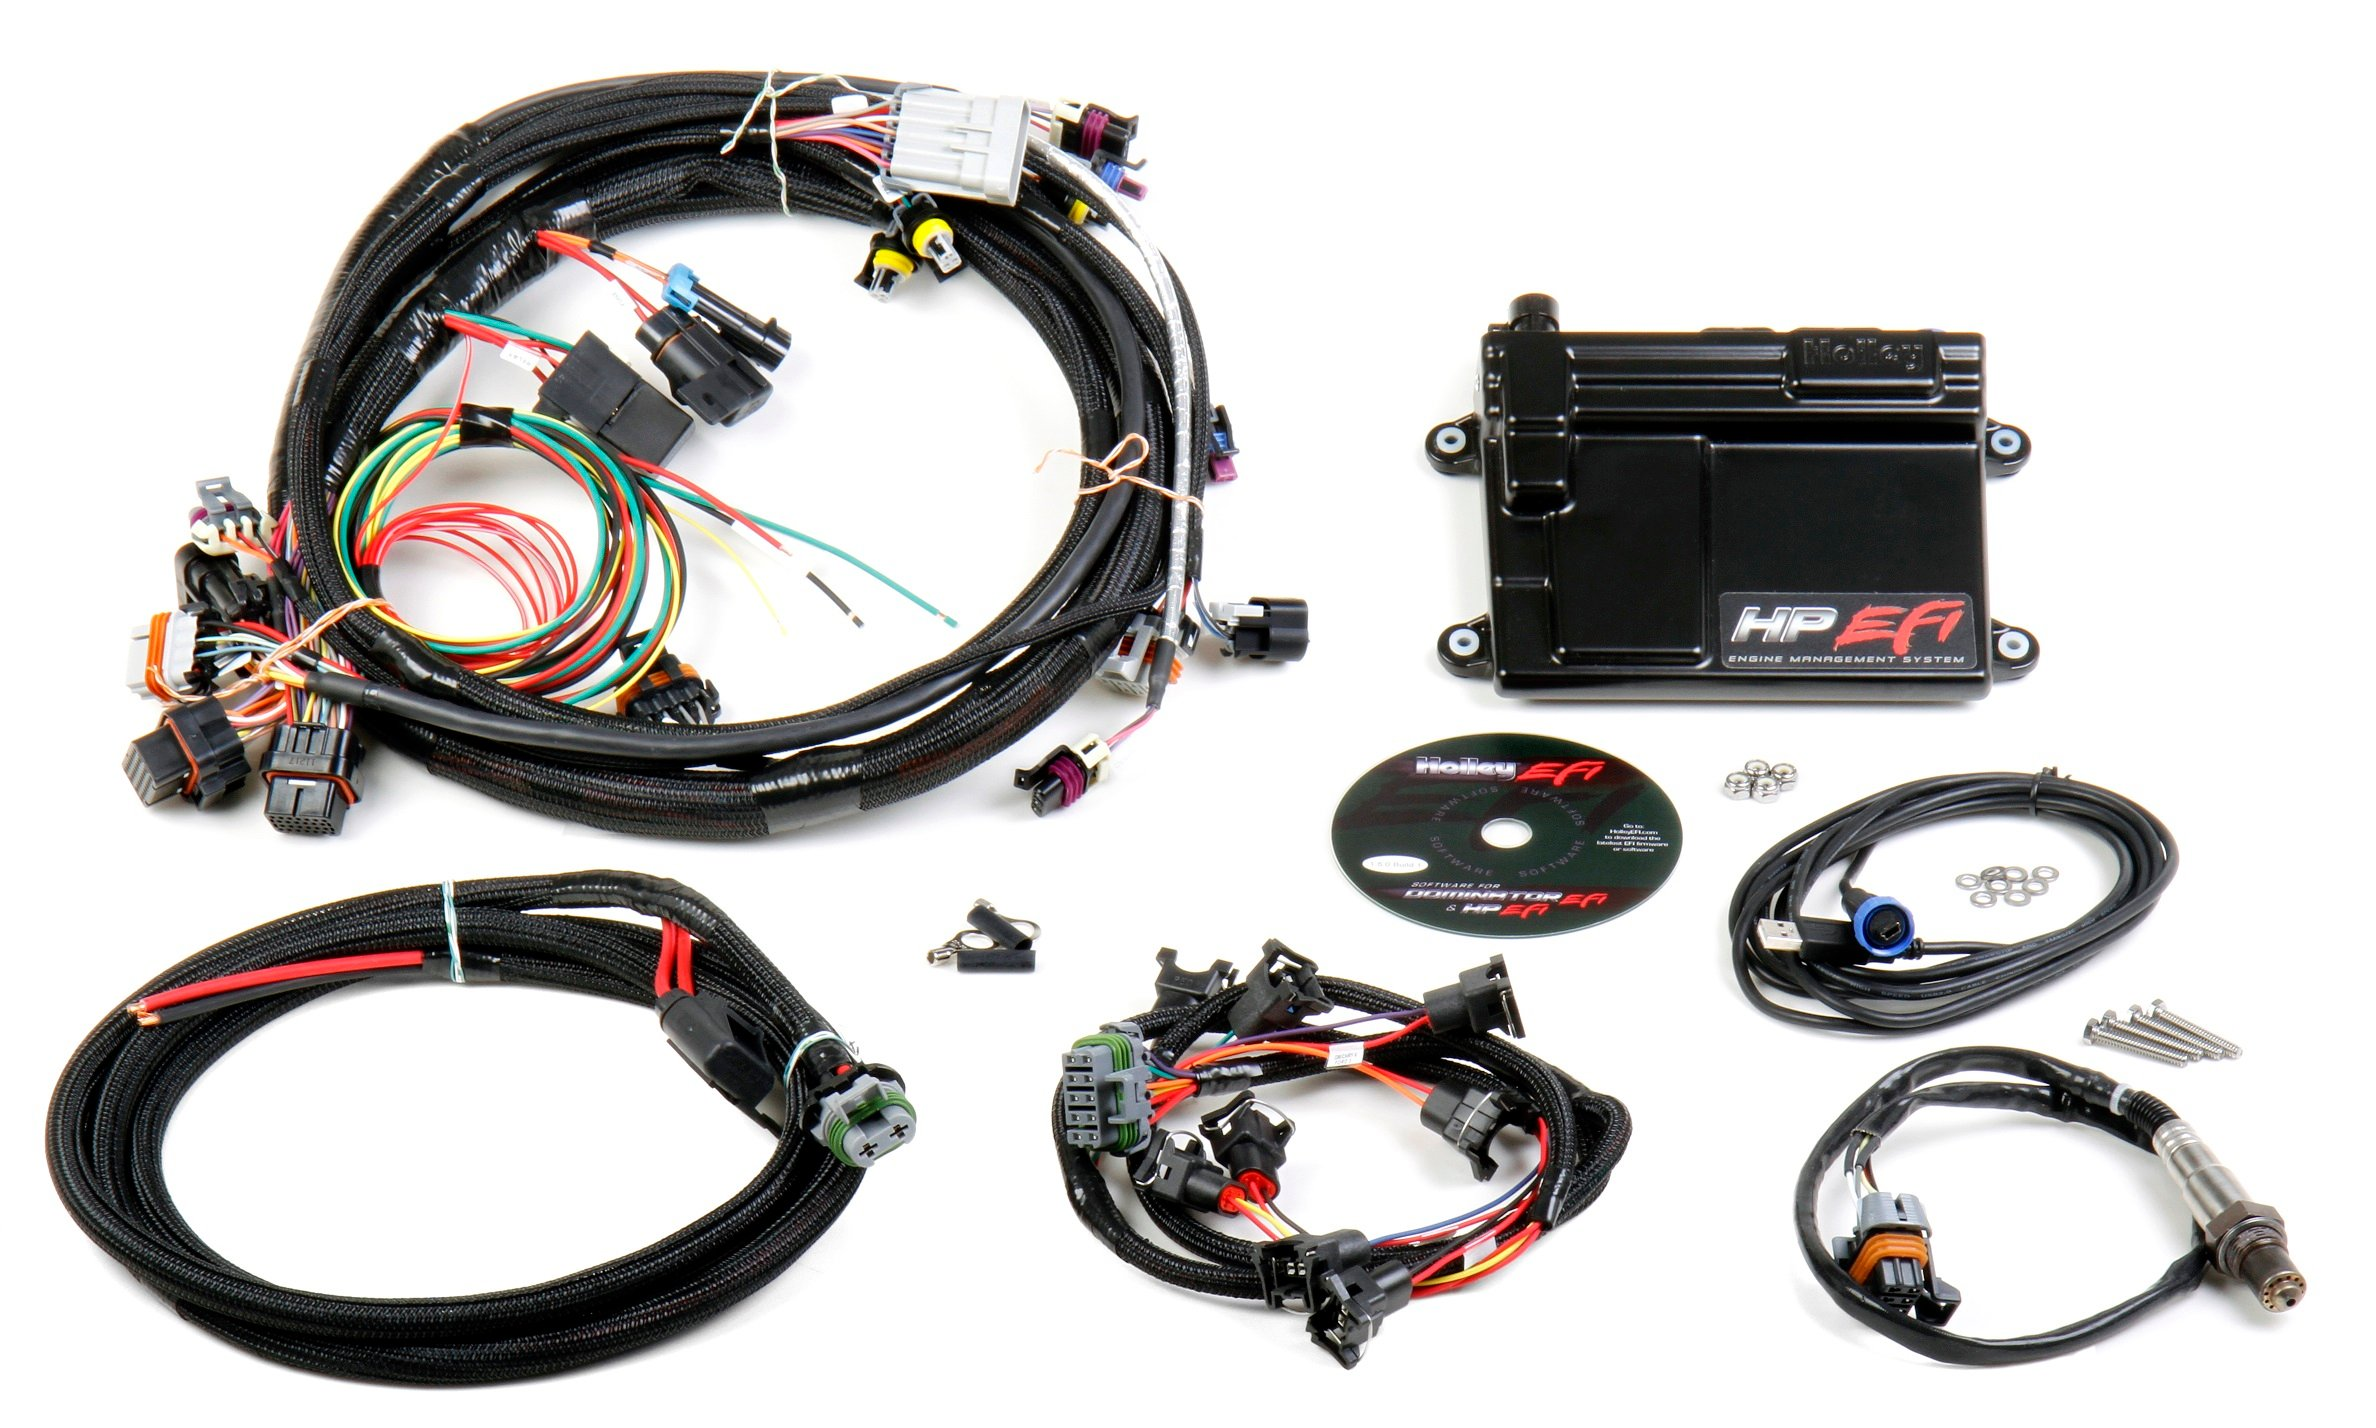 550 602 holley efi 550 602 hp efi ecu & harness kits 5.7 vortec stand alone wiring harness at aneh.co